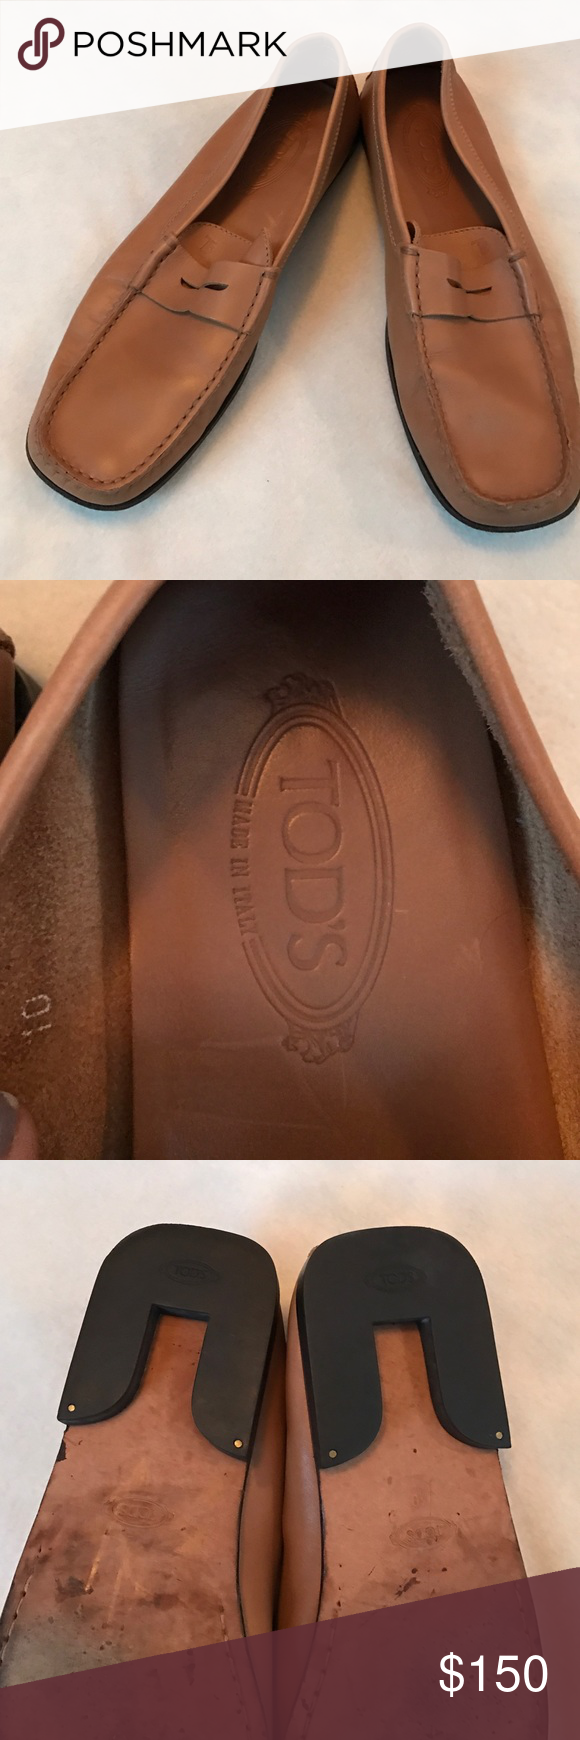 Tod's Leather Penny Loafer Includes Tod's monogram hot stamped on top. Leather caramel Tan penny loafer. Soles in excellent condition not wore down as shown in picture. Super soft Italian leather, made in Italy Tod's Shoes Loafers & Slip-Ons